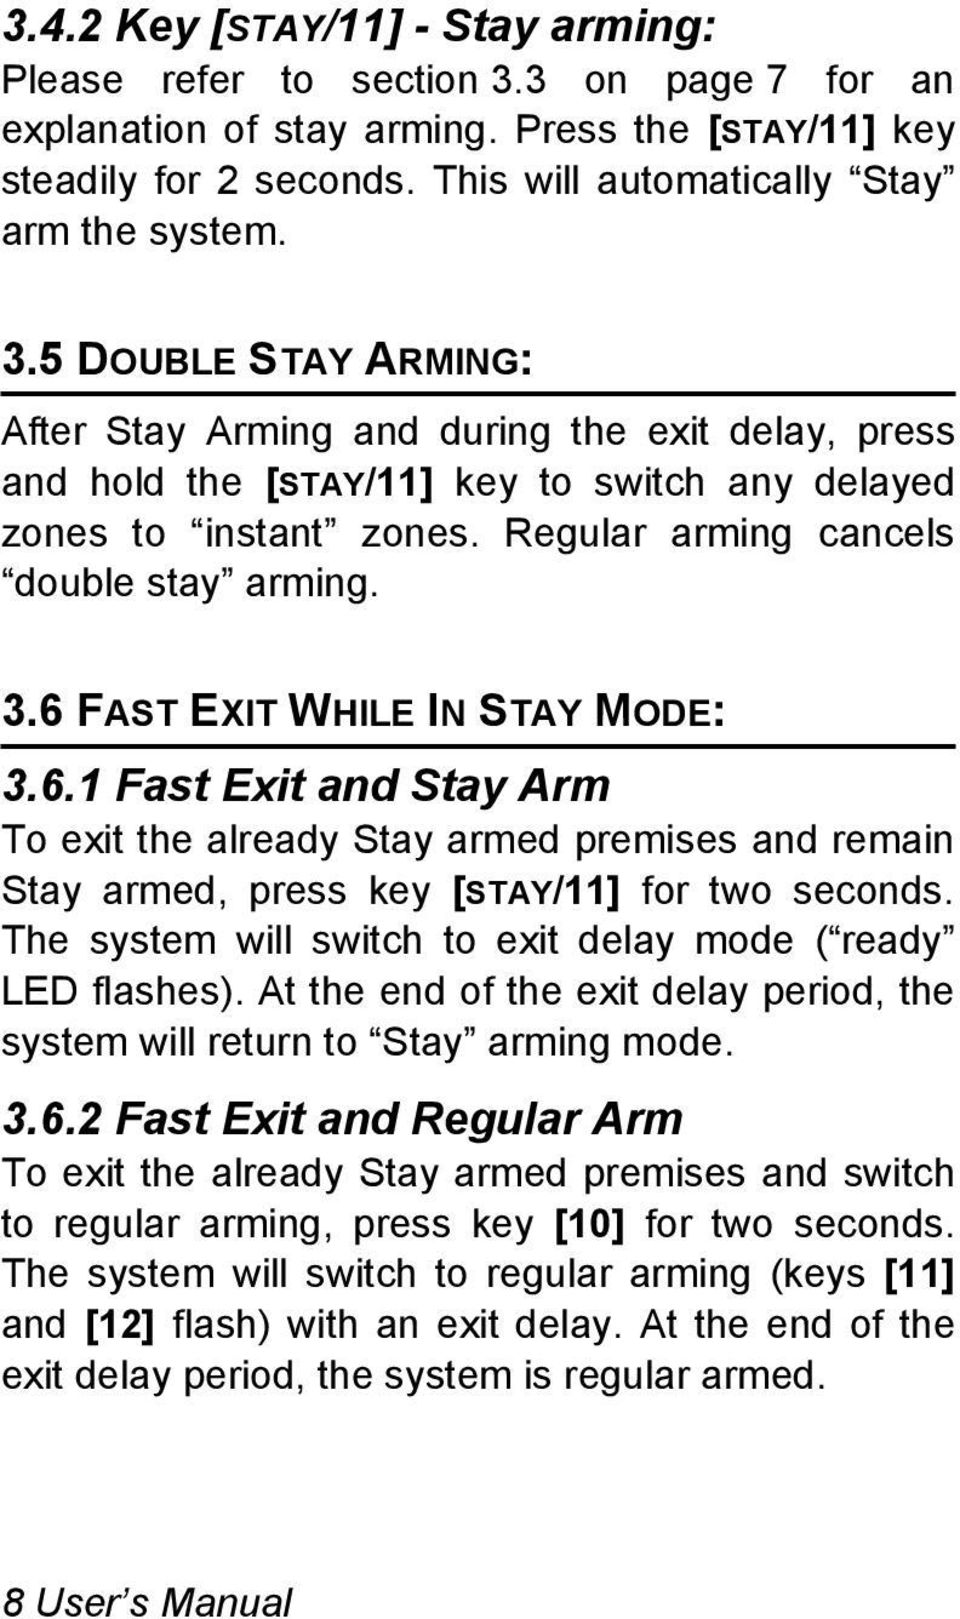 6 FAST EXIT WHILE IN STAY MODE: 3.6.1 Fast Exit and Stay Arm To exit the already Stay armed premises and remain Stay armed, press key [STAY/11] for two seconds.